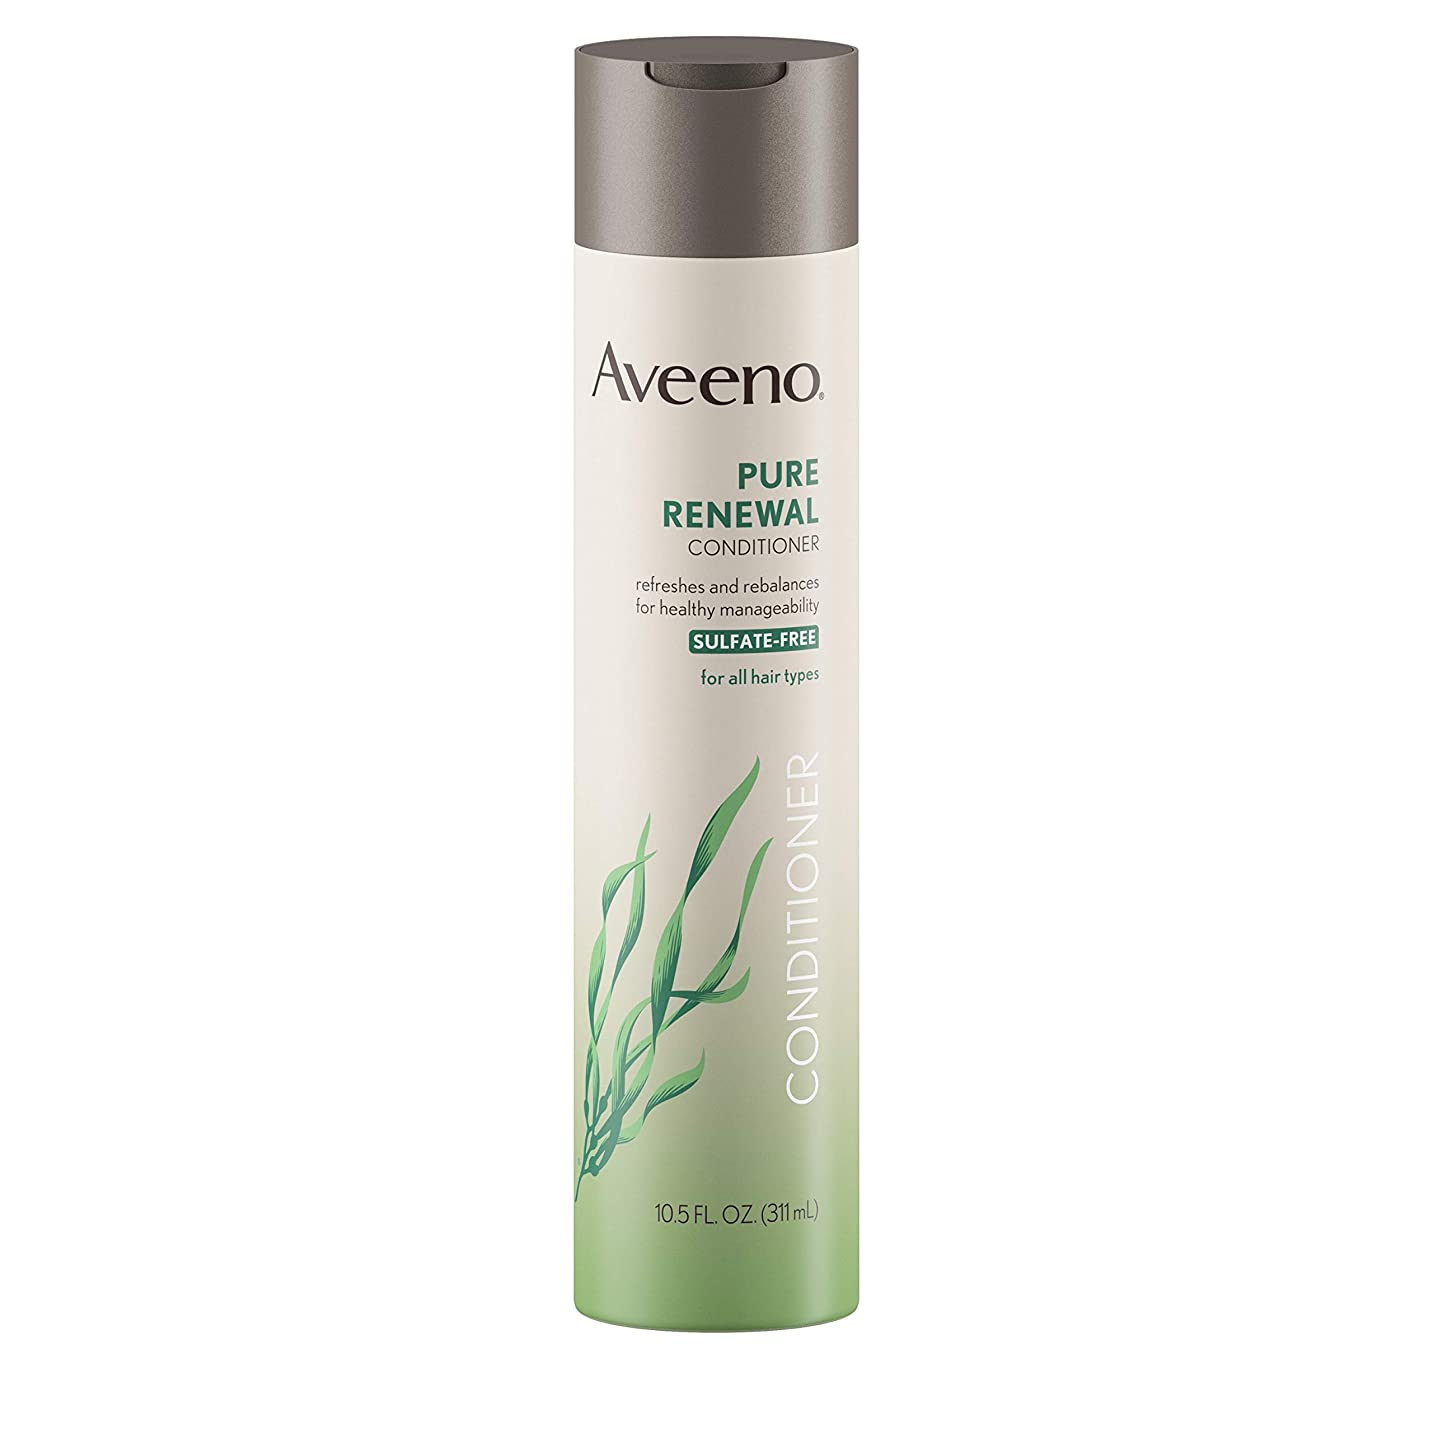 ロッジ賞賛パトロンAveeno Pure Renewal Conditioner 310 ml (Sulfate-Free) (並行輸入品)